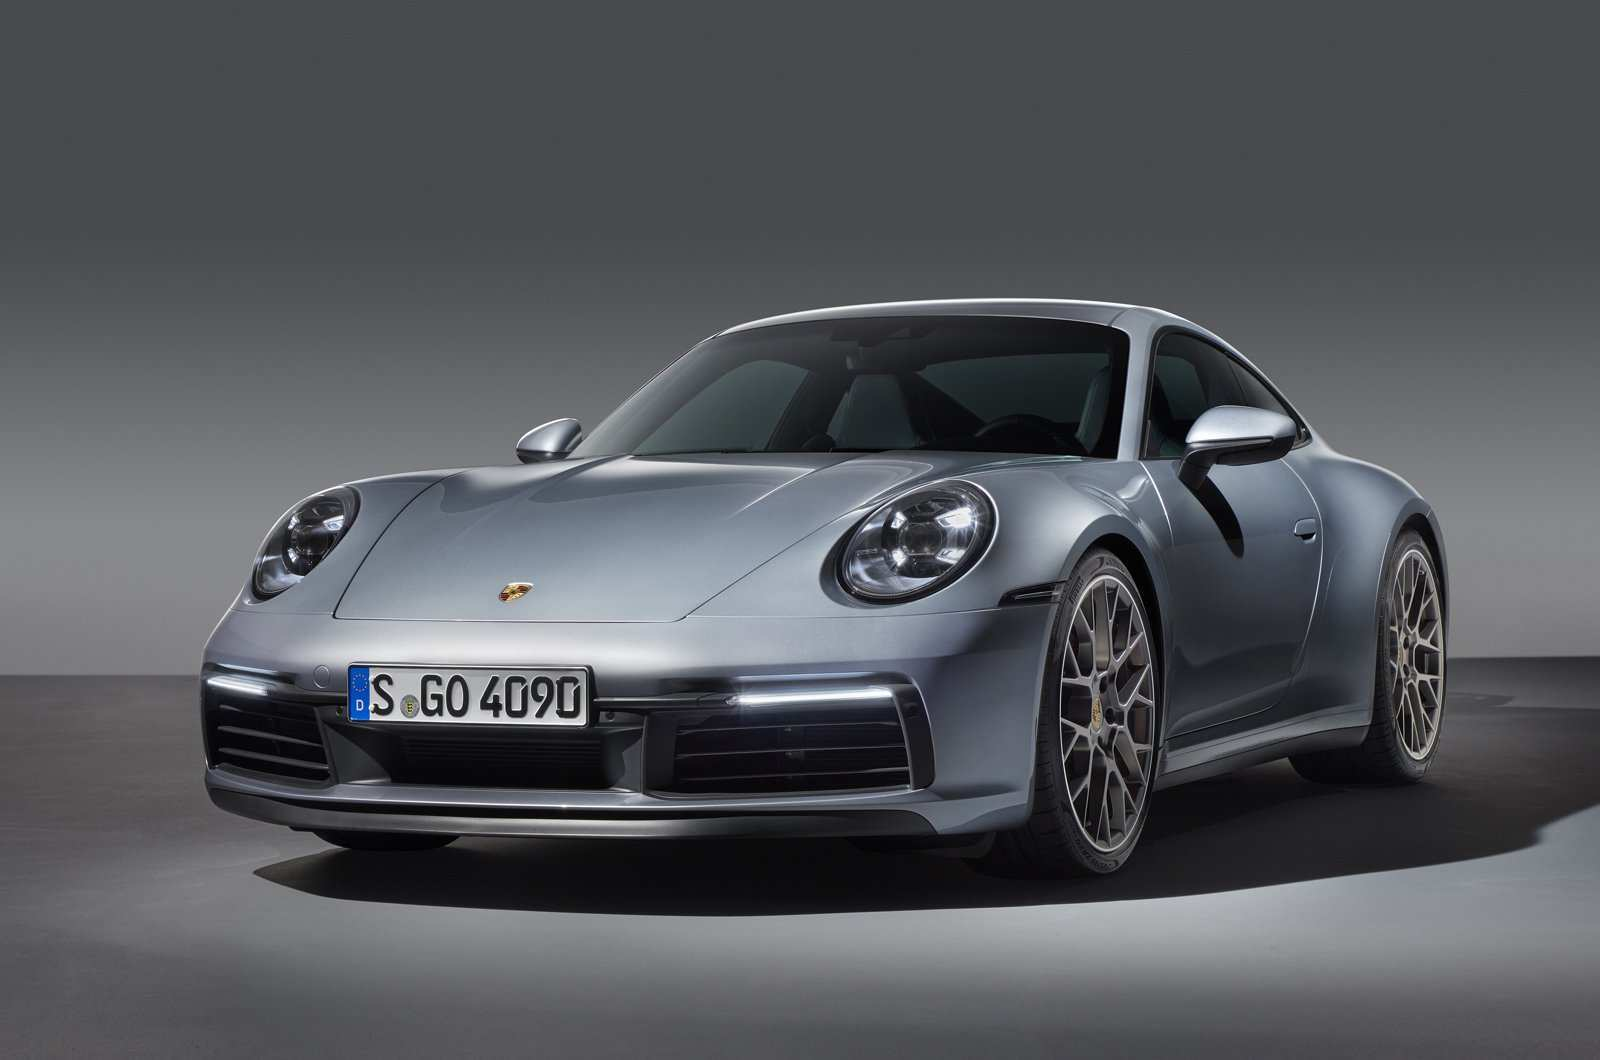 88 New 2019 Porsche Release Date Exterior and Interior by 2019 Porsche Release Date